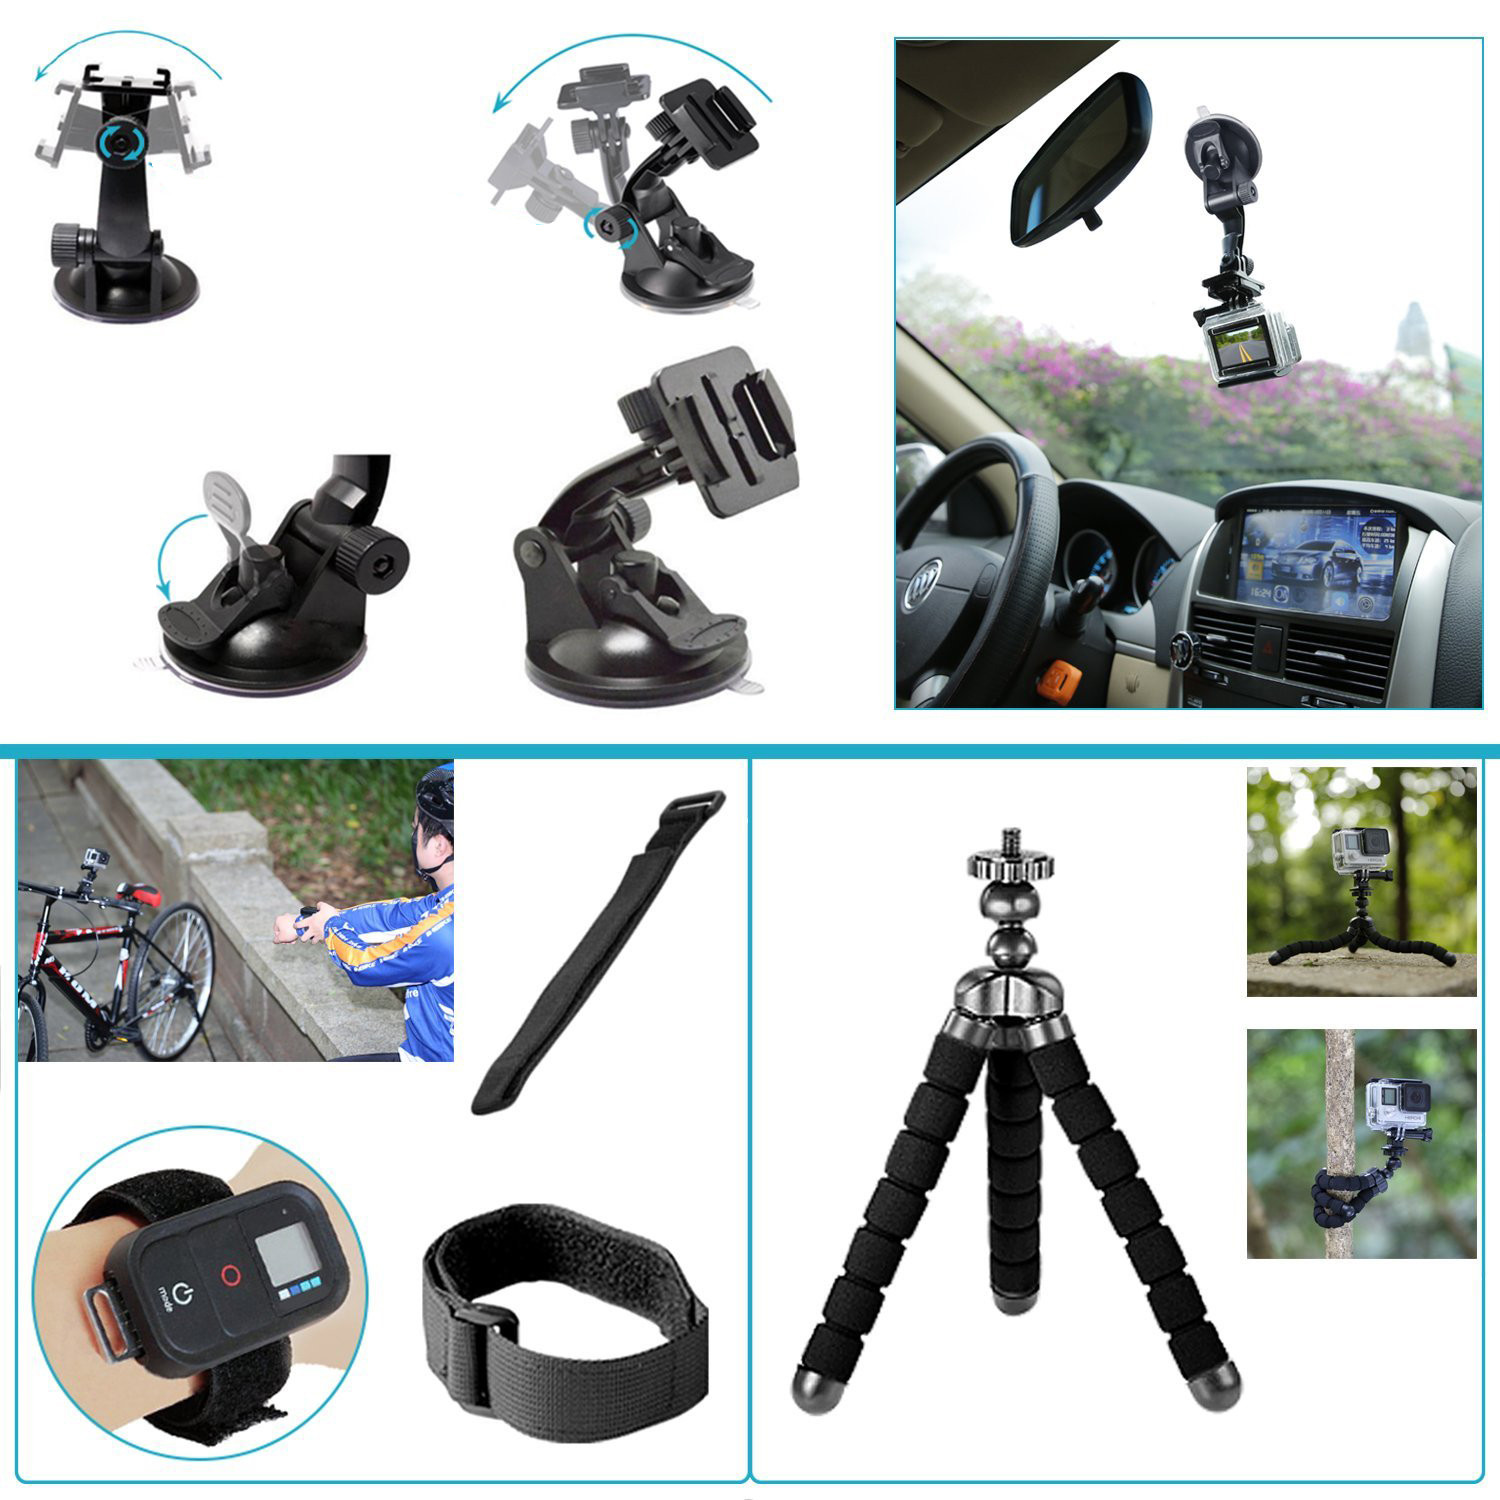 36 In 1 Sport Accessory Kit for GoPro Hero4 Session Hero Series for Xiaomi Yi In Skiing Climbing Bike Camping Diving